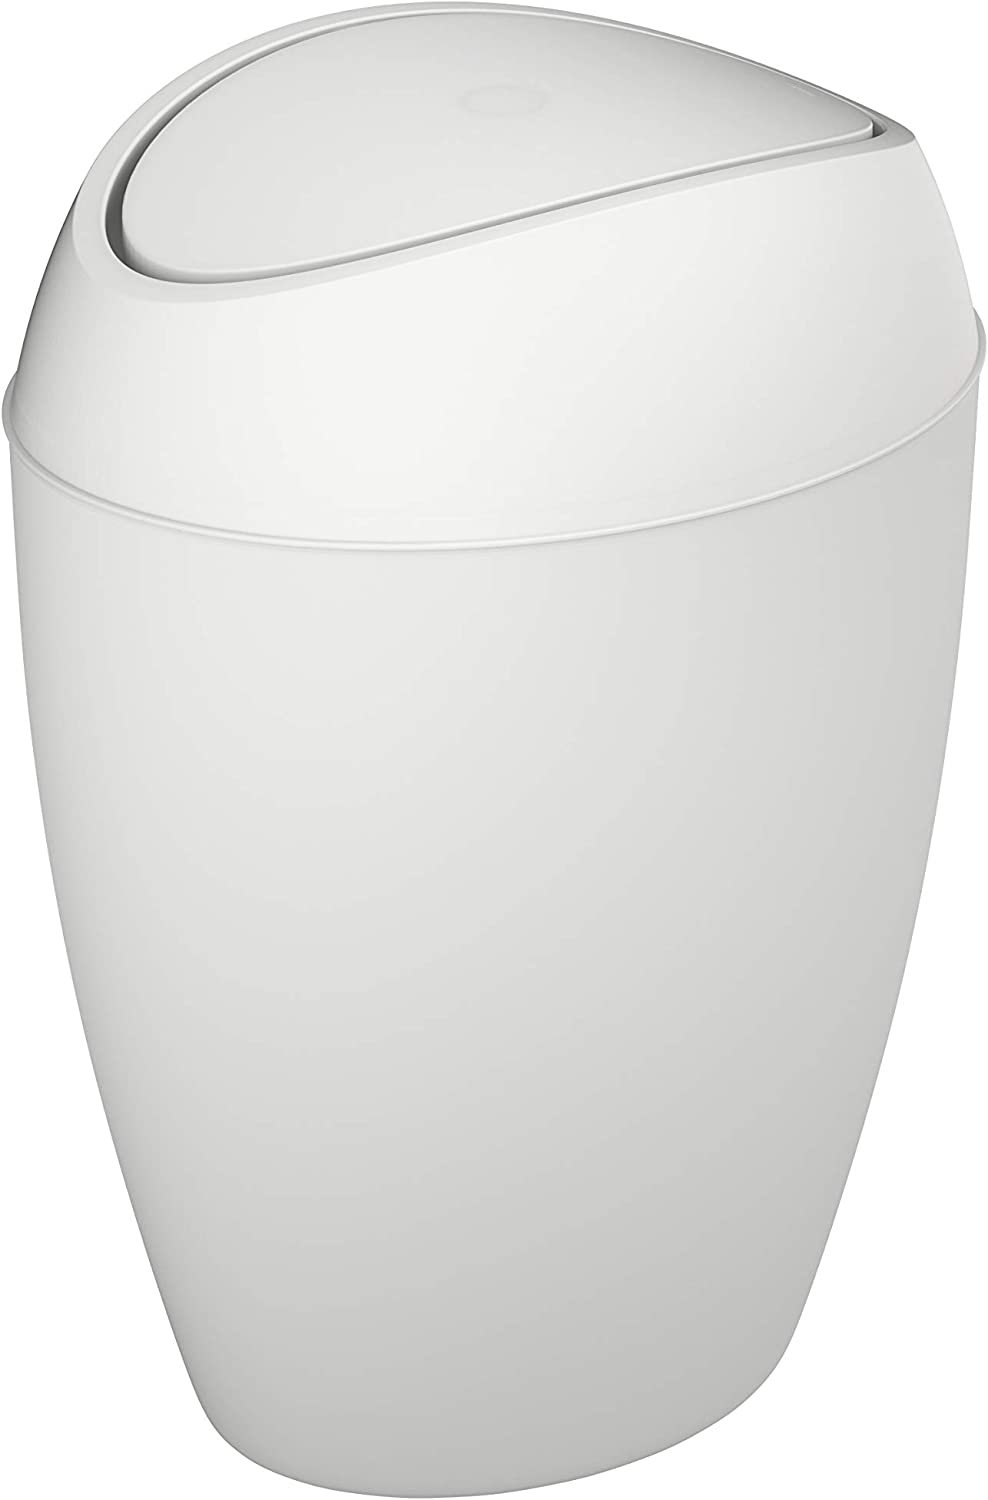 Trash Can with Swing-top Lid 2.4 Gallon Shadow Gray